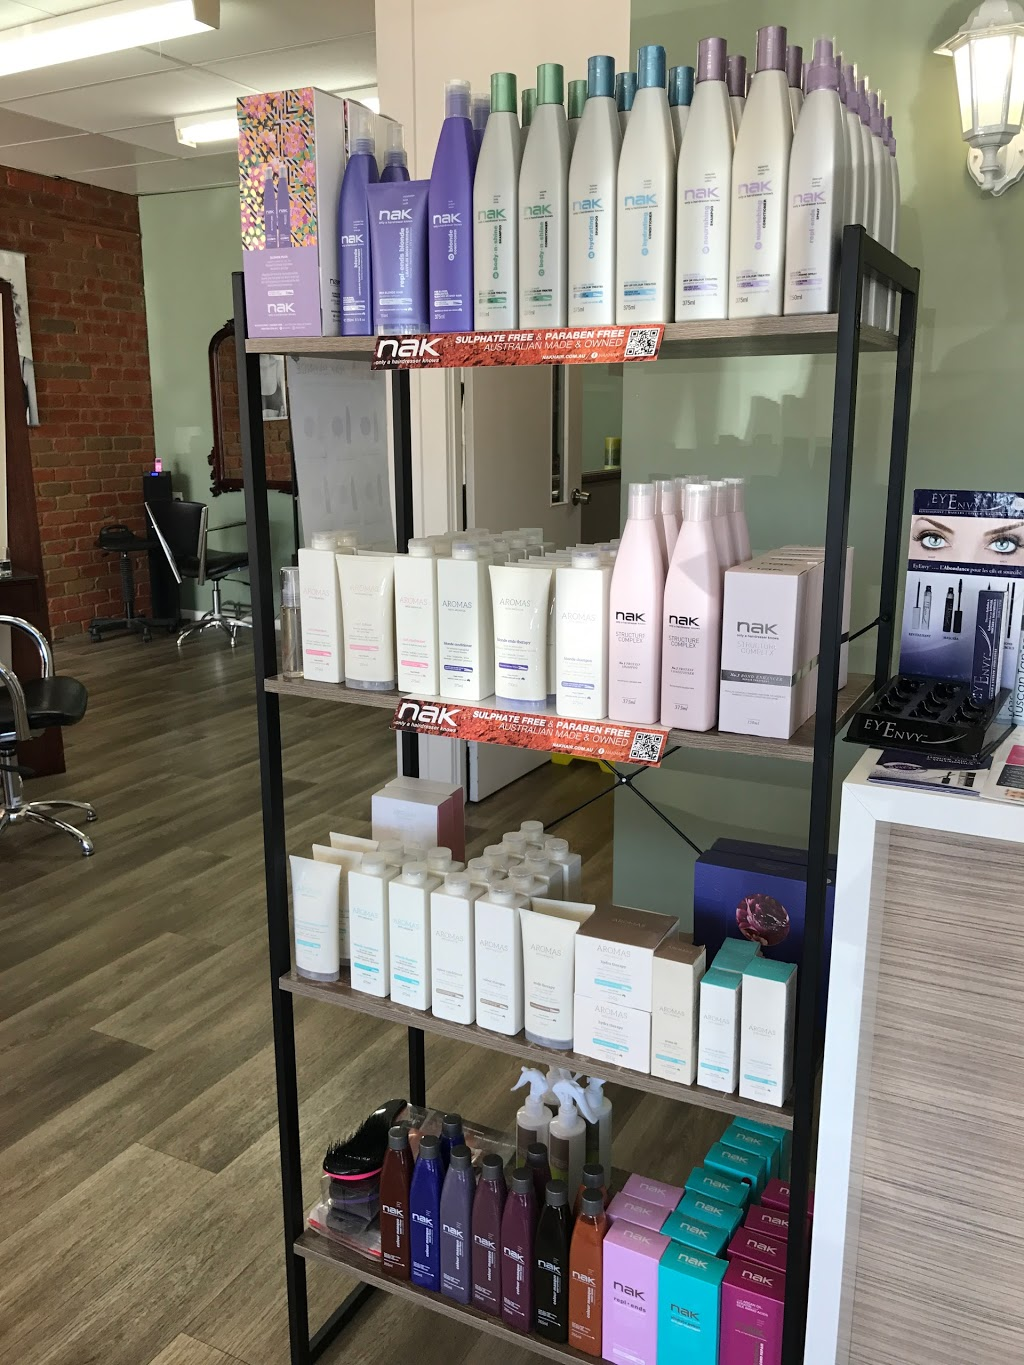 Touche Hair, Skin & Body | hair care | 919 Macarthur St, Lake Wendouree VIC 3350, Australia | 0353315844 OR +61 3 5331 5844